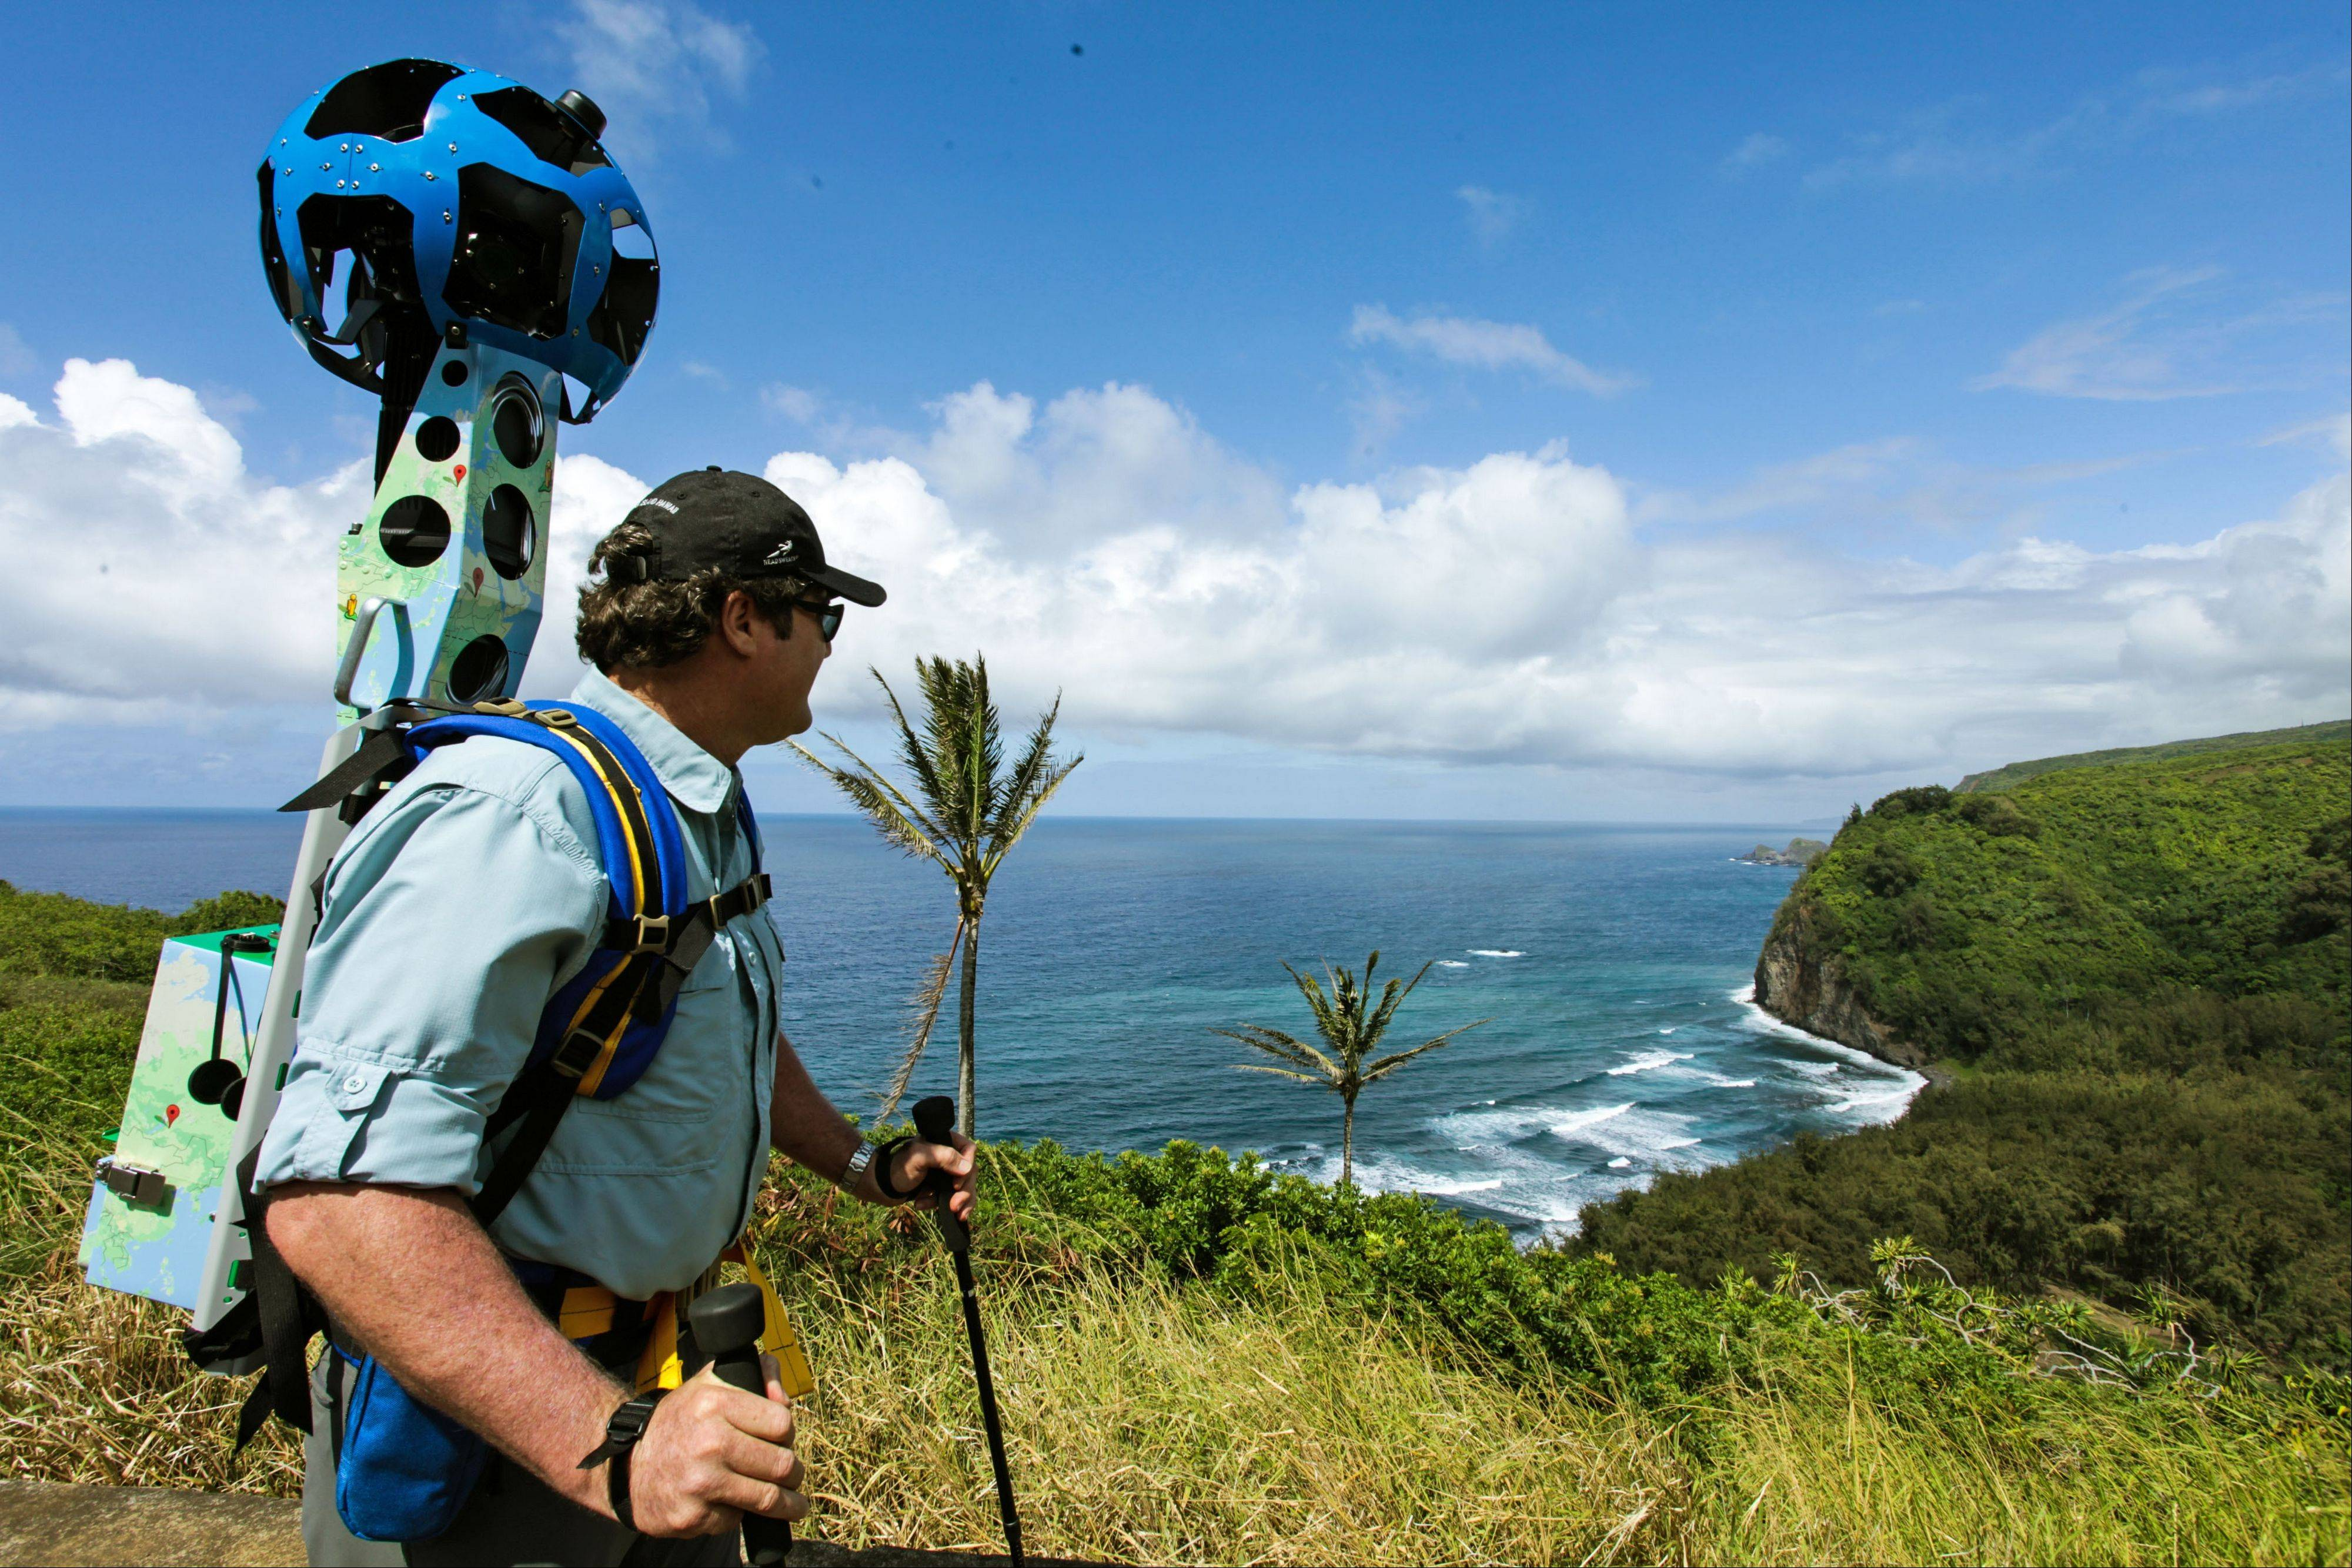 Rob Pacheco, president of Hawaii Forest & Trail, takes in the view at Pololu Valley's Awini Trail near Kapaau, Hawaii, while wearing the Street View Trekker. Hawaii's volcanoes, rain forests and beaches will soon be visible on Google Street View.